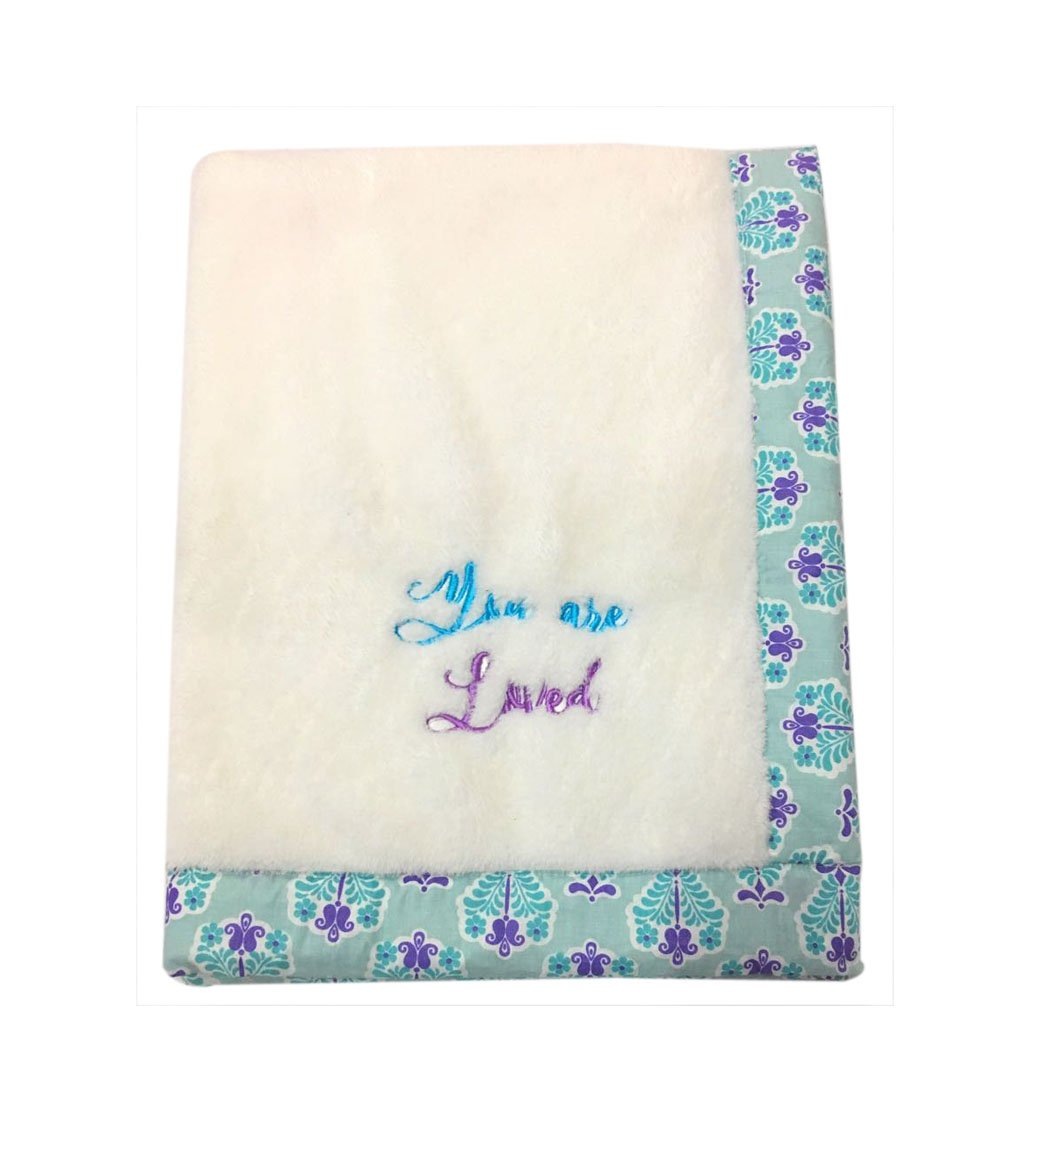 Bacati - Paisley Floral Plush Embroidered 30 x 40 inches Baby Blanket (Aqua/Lilac/Purple Floret White)